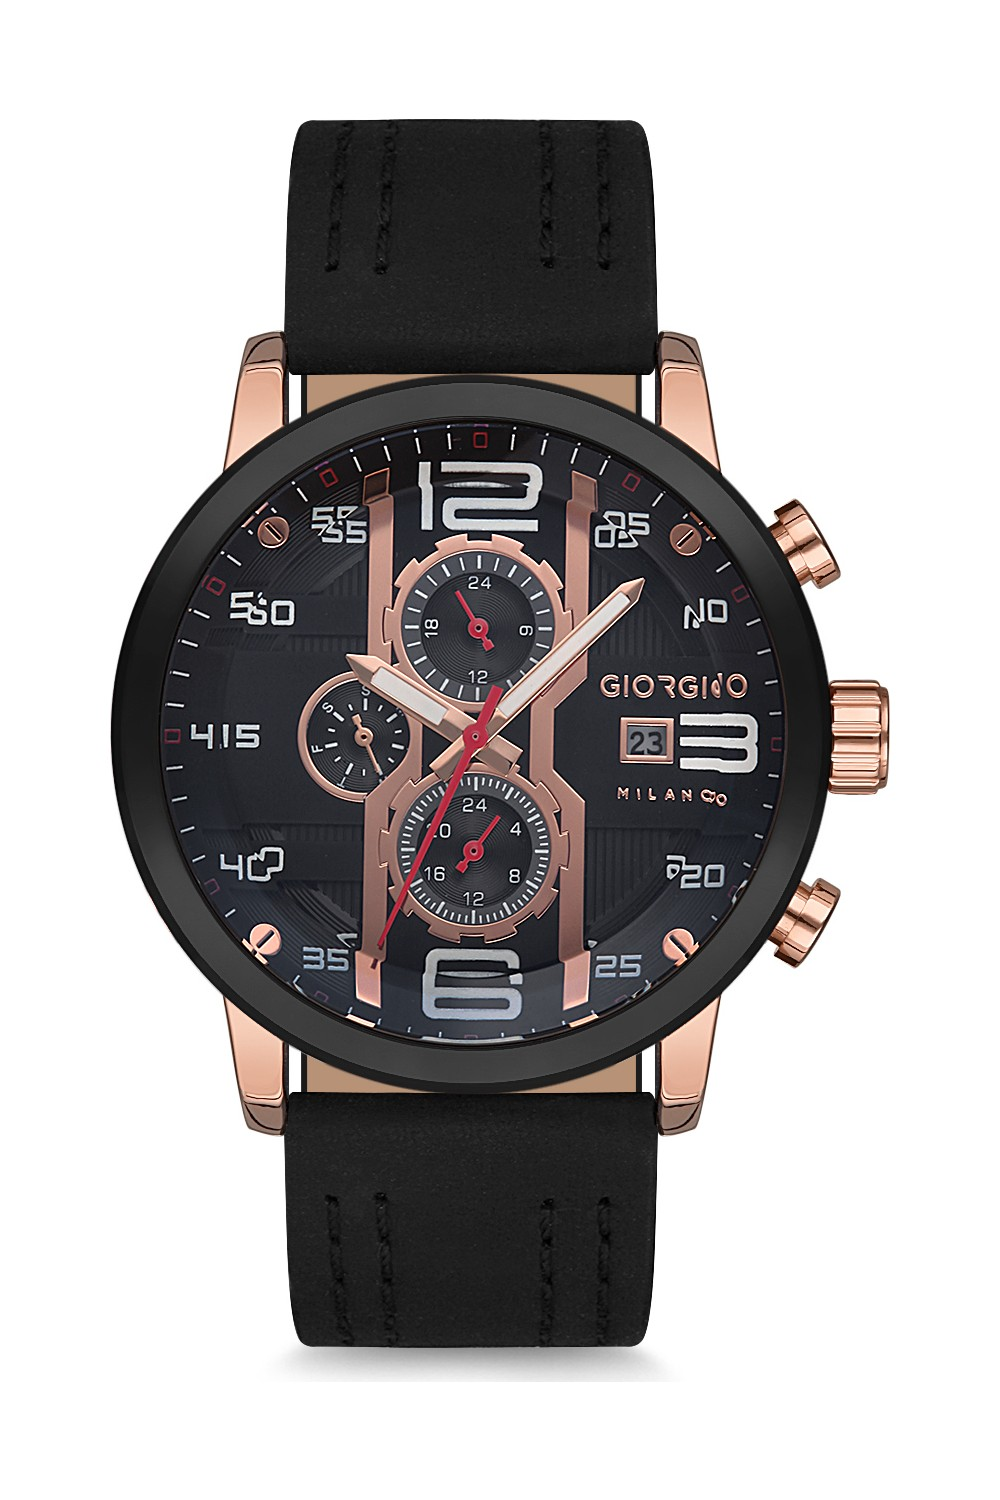 Giorgio Milano Men's Watch GM0200-06